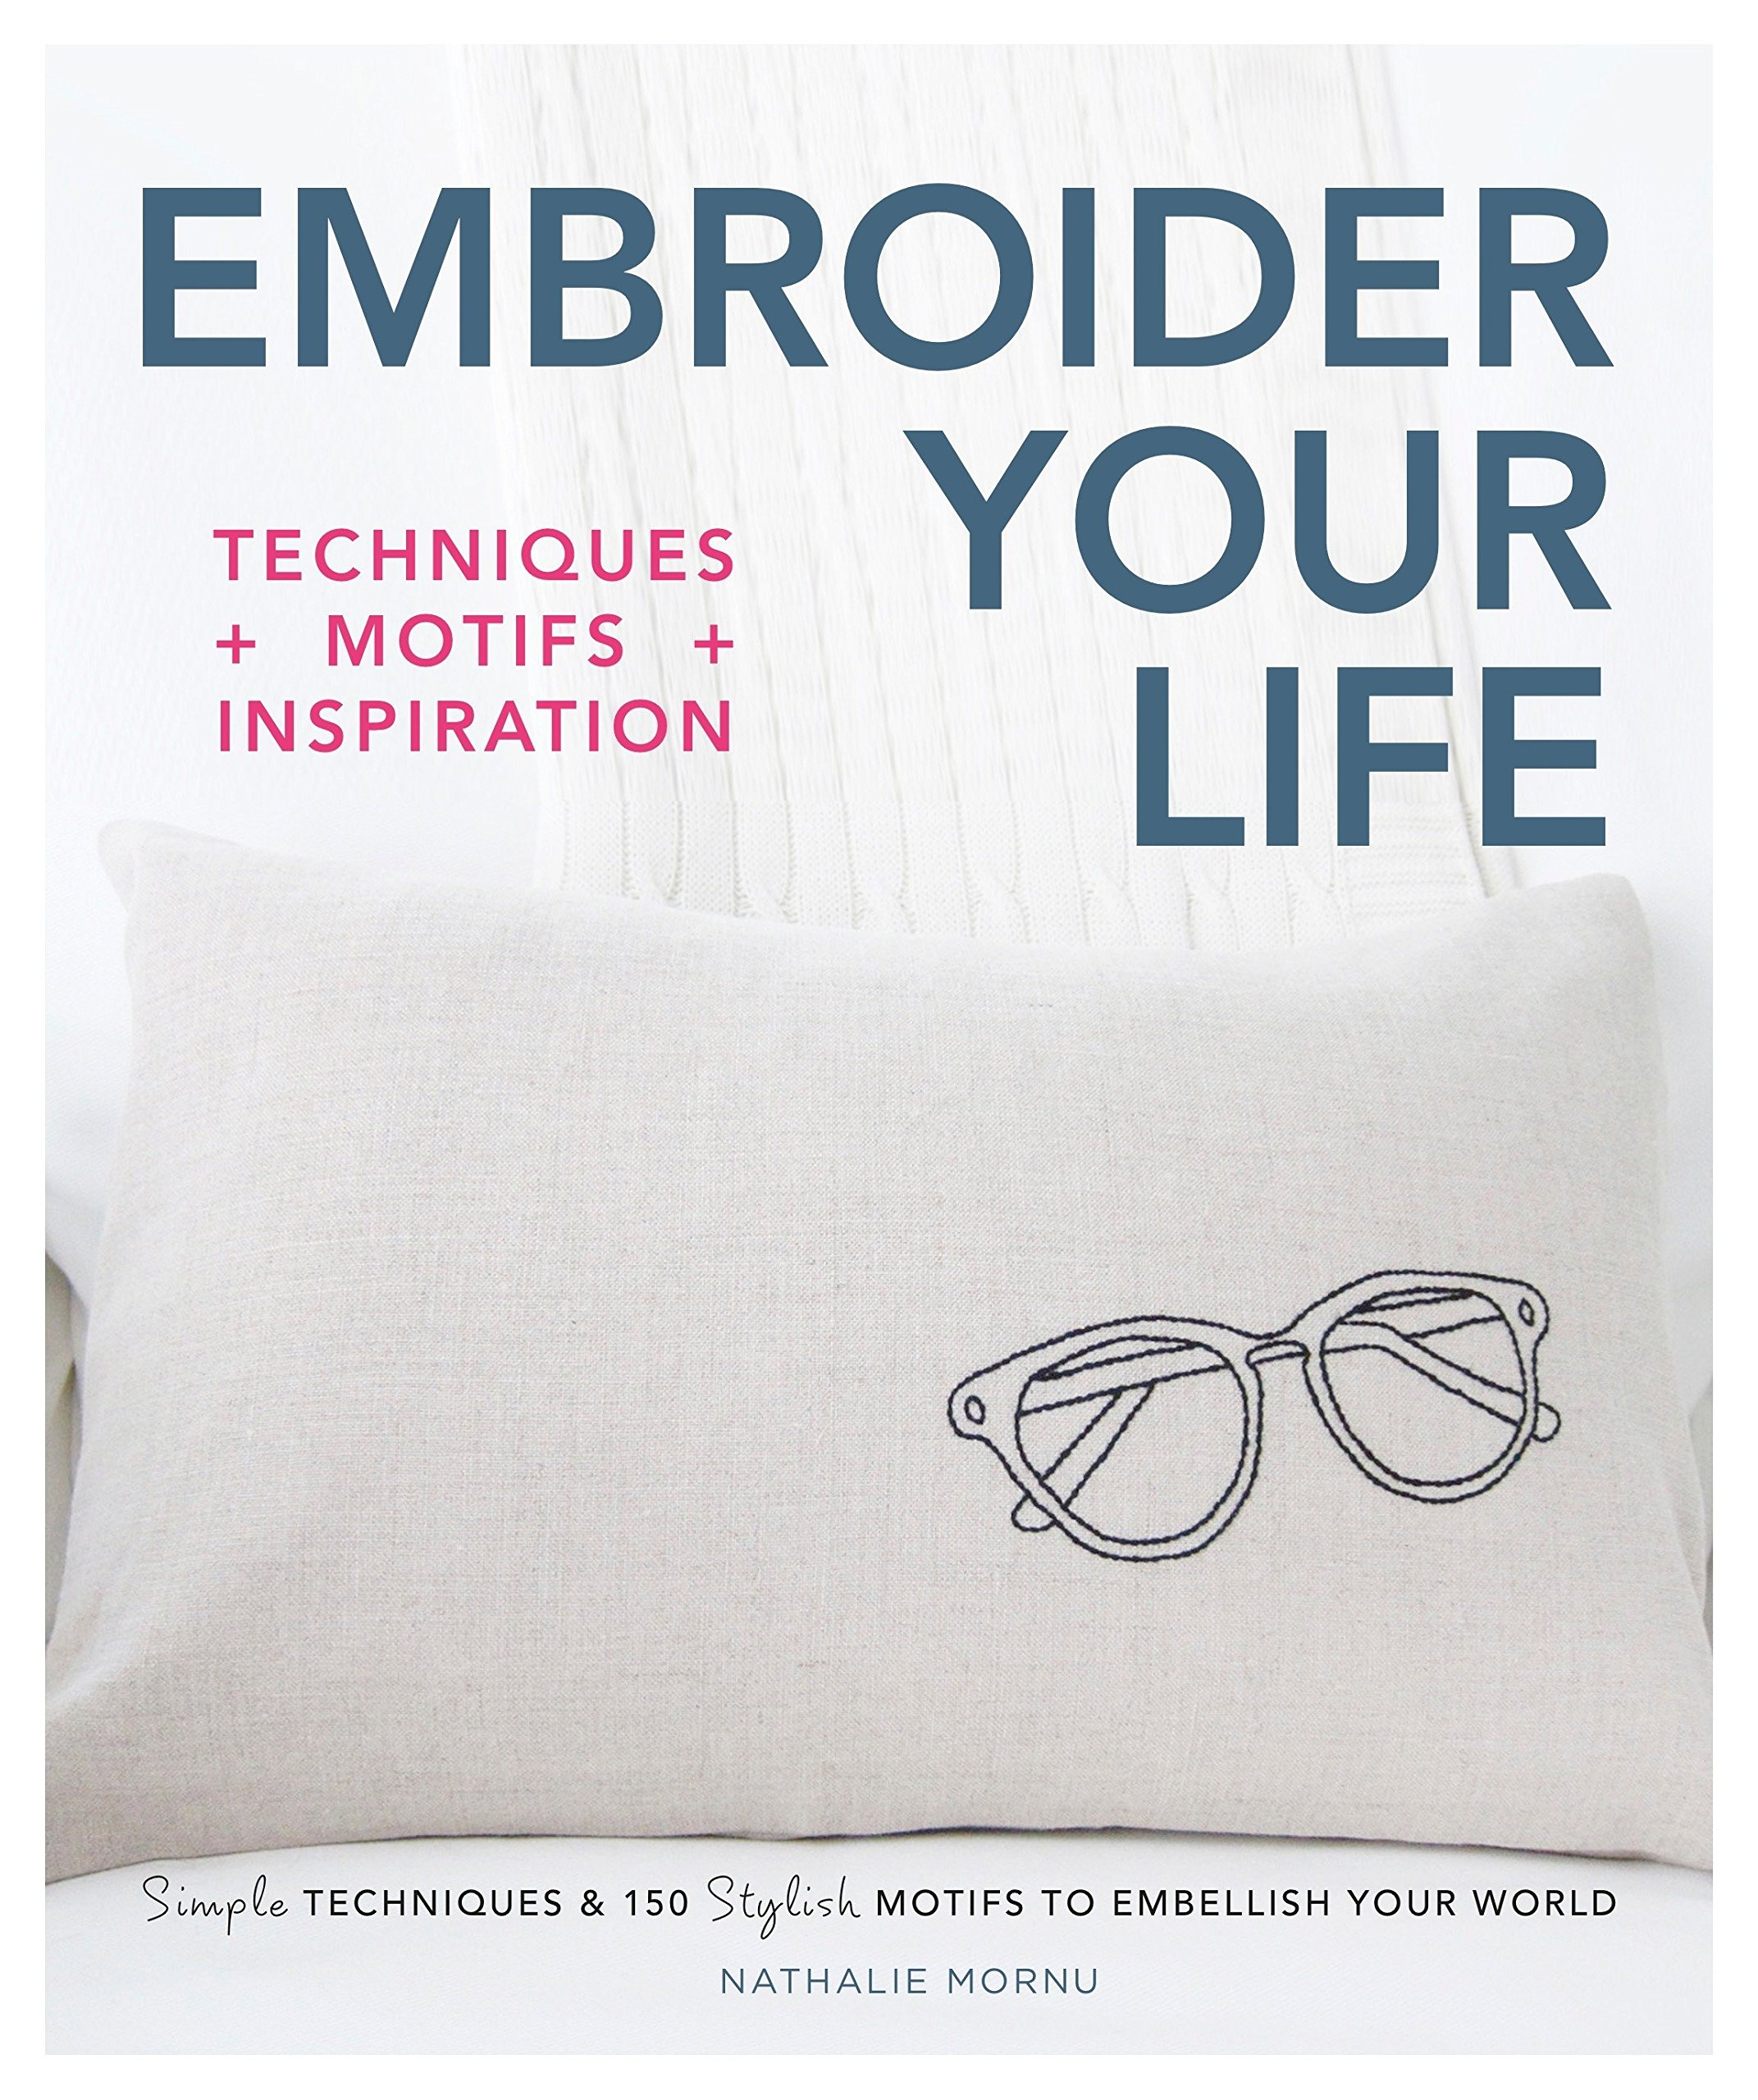 d4fab6c2350 Embroider Your Life  Simple Techniques   150 Stylish Motifs to Embellish  Your World Paperback – September 12